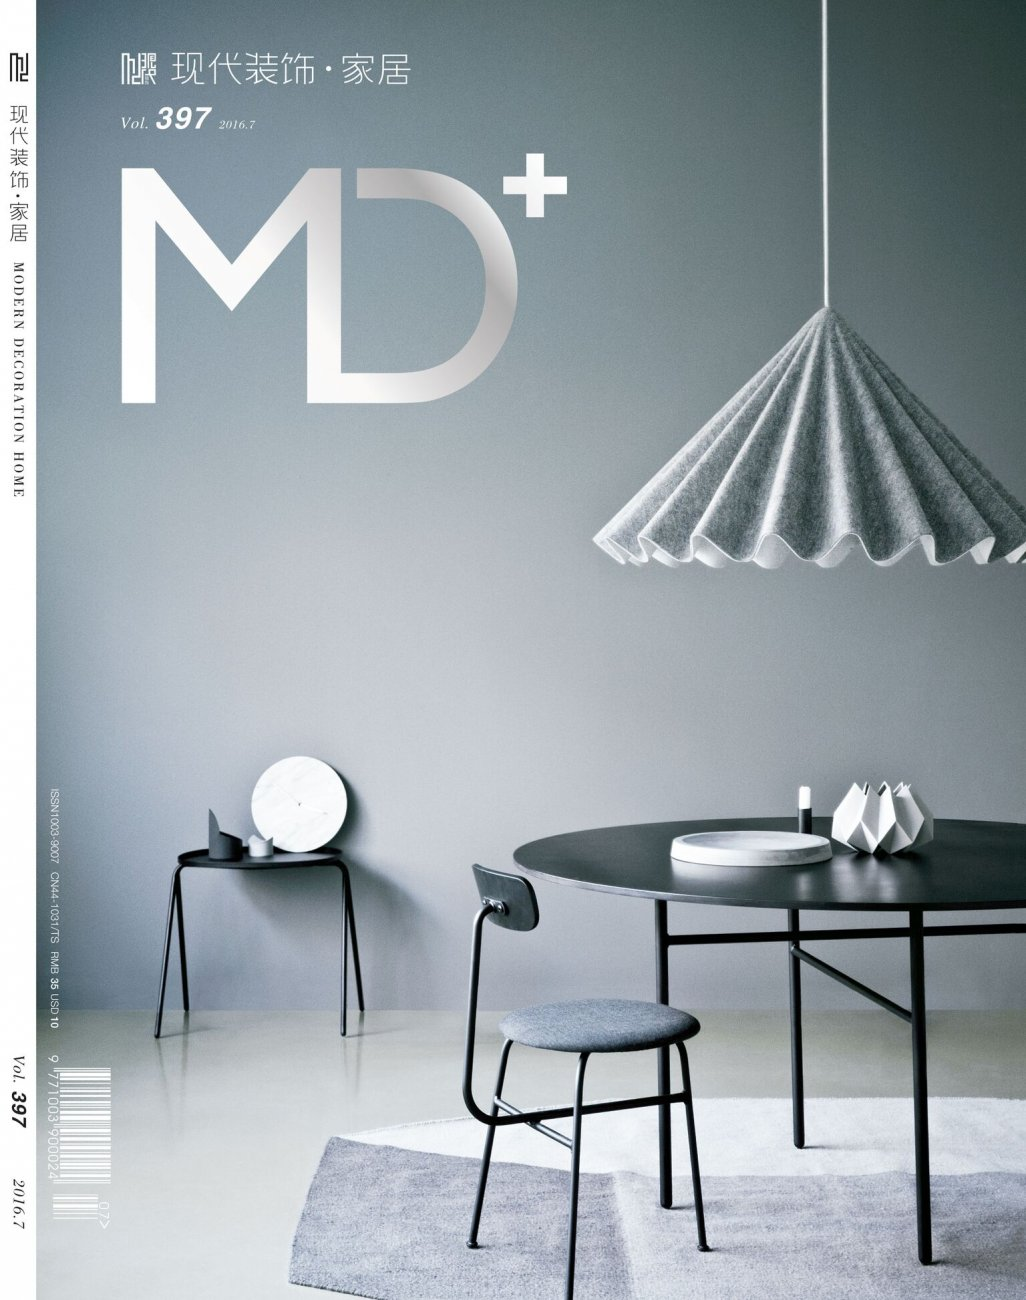 MD+ Vol.397 / July 2016 / MD+ Magazine